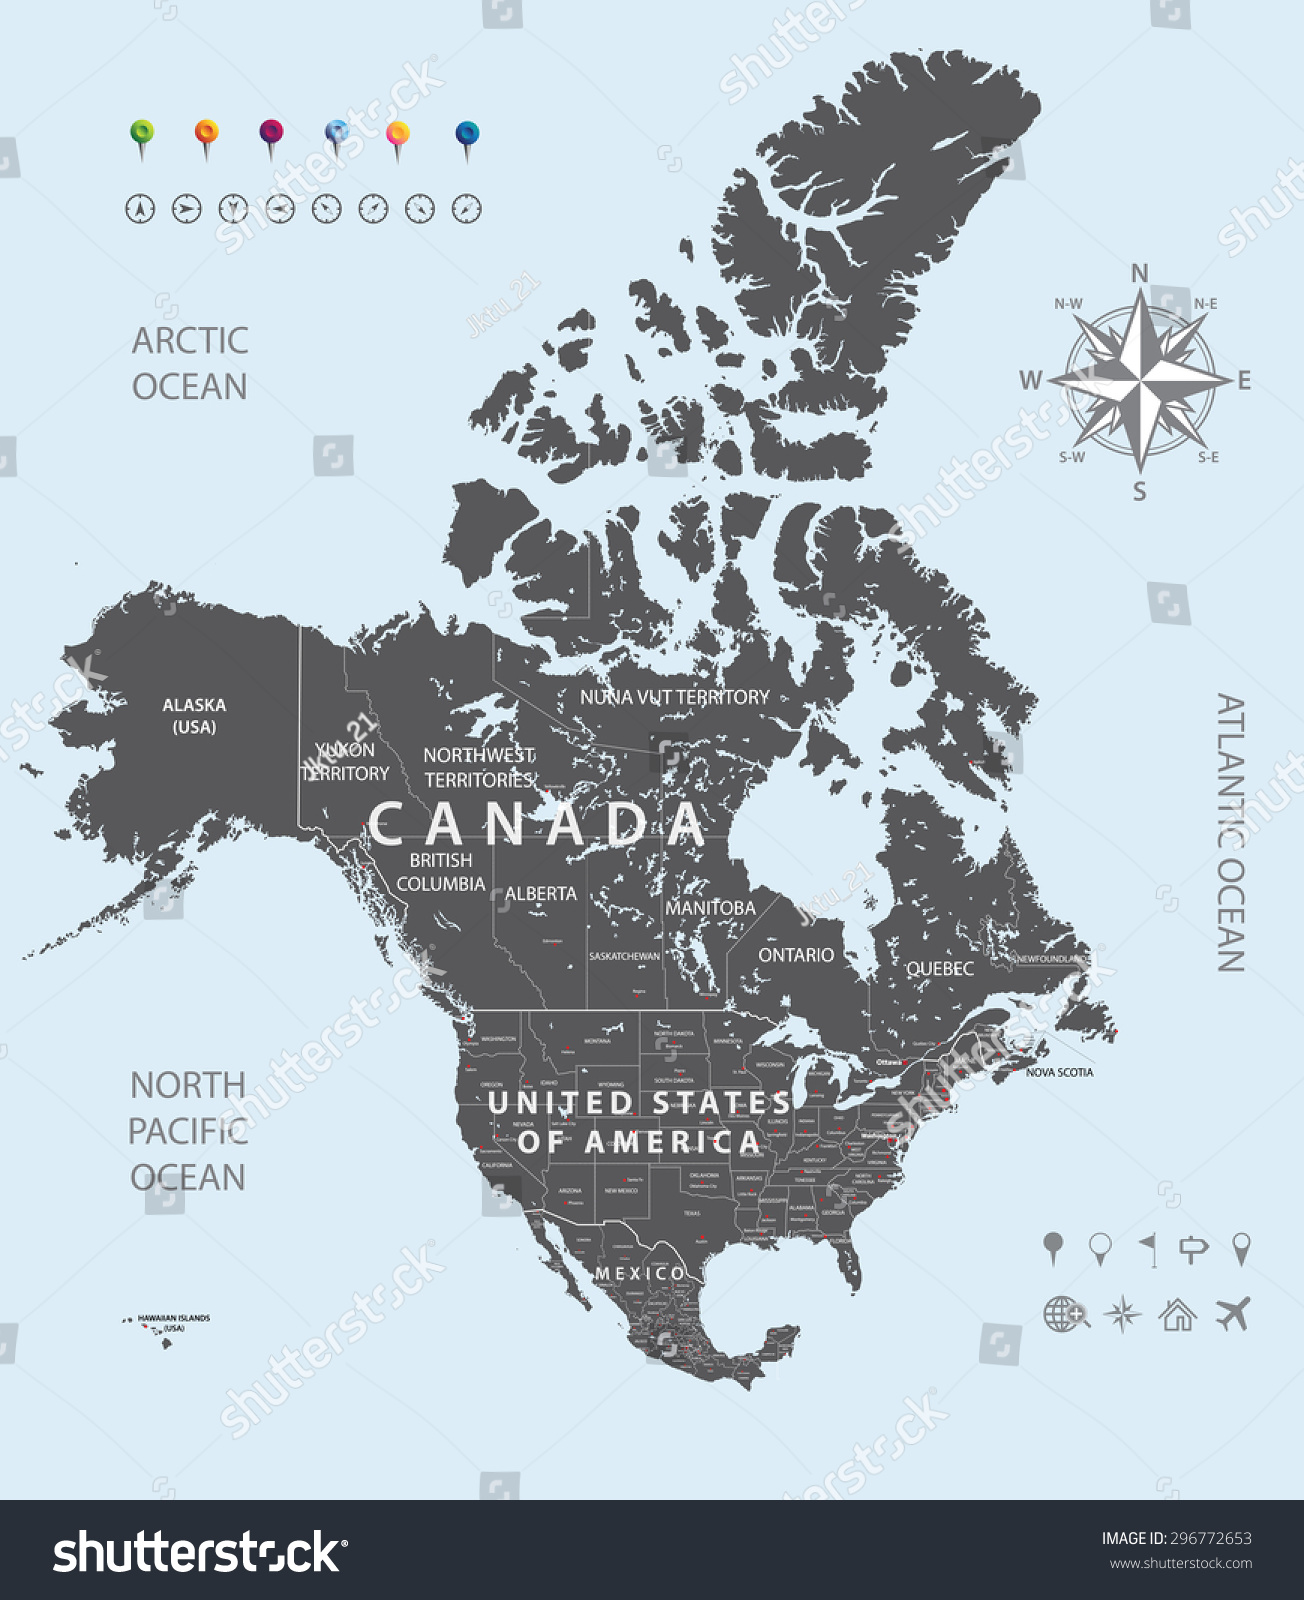 Map Of Canada Cities And Provinces Contact Phigs Imc Inc - Us and canada vector map